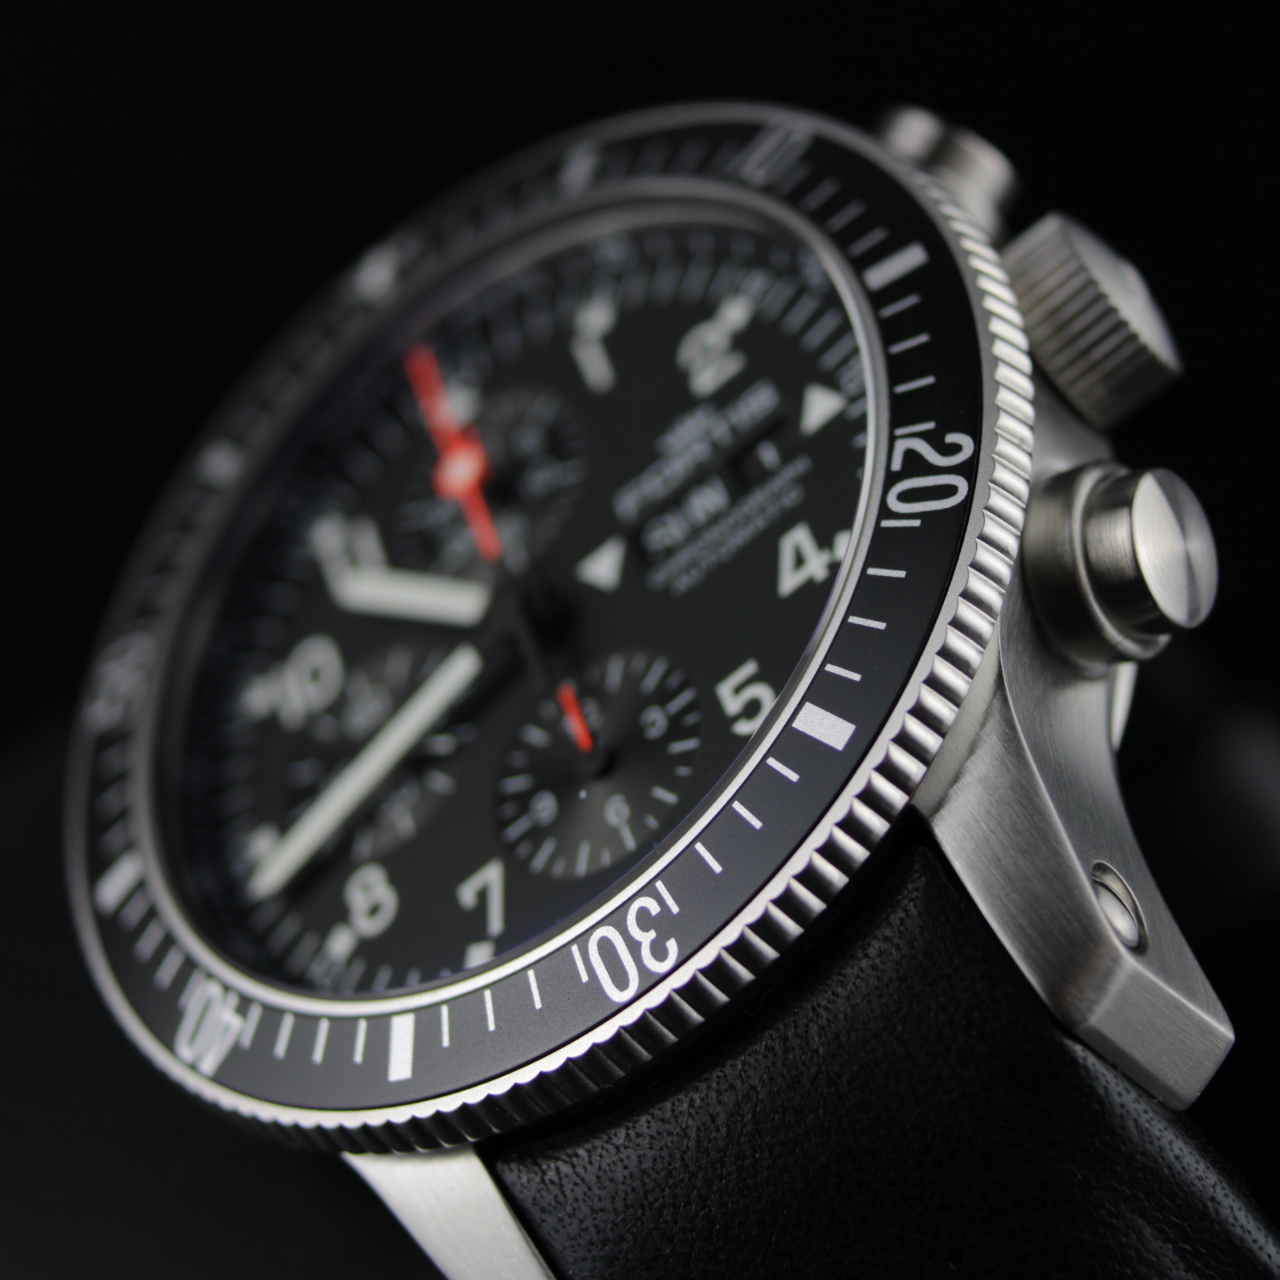 Fortis OFFICIAL COSMONAUTS CHRONOGRAPH, 638.10.11 mit  Lederband